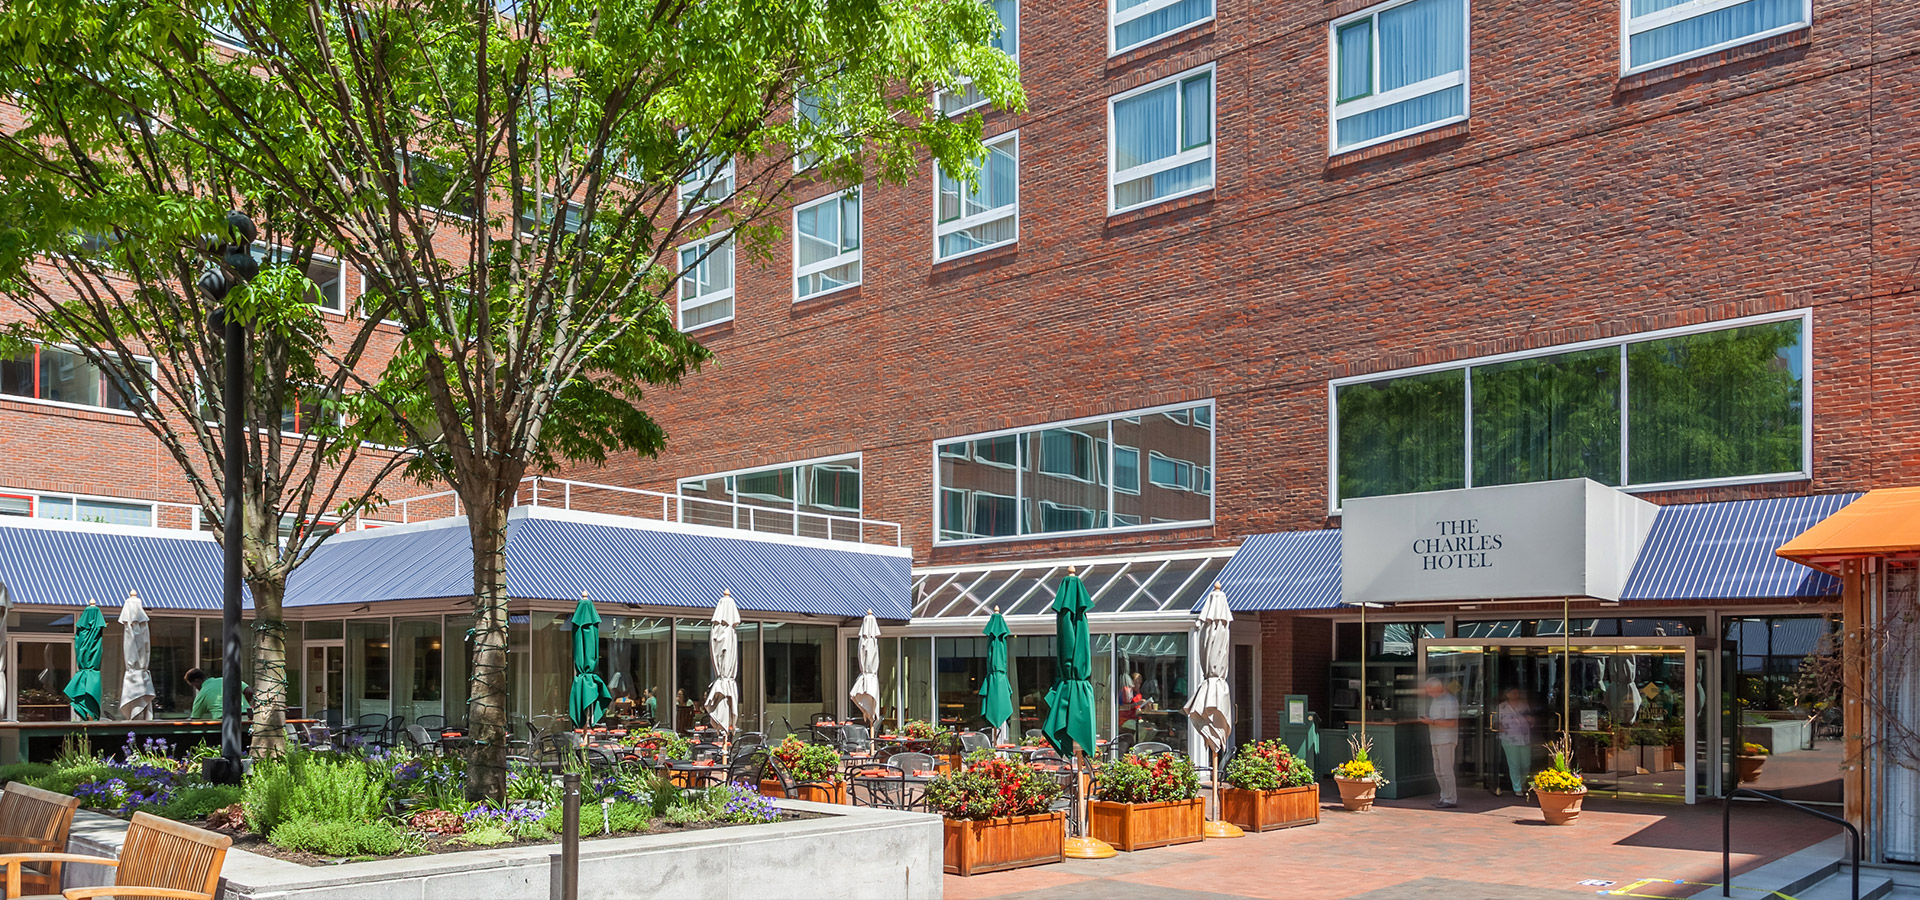 Hotels in Cambridge | The Charles Hotel - Contact Us